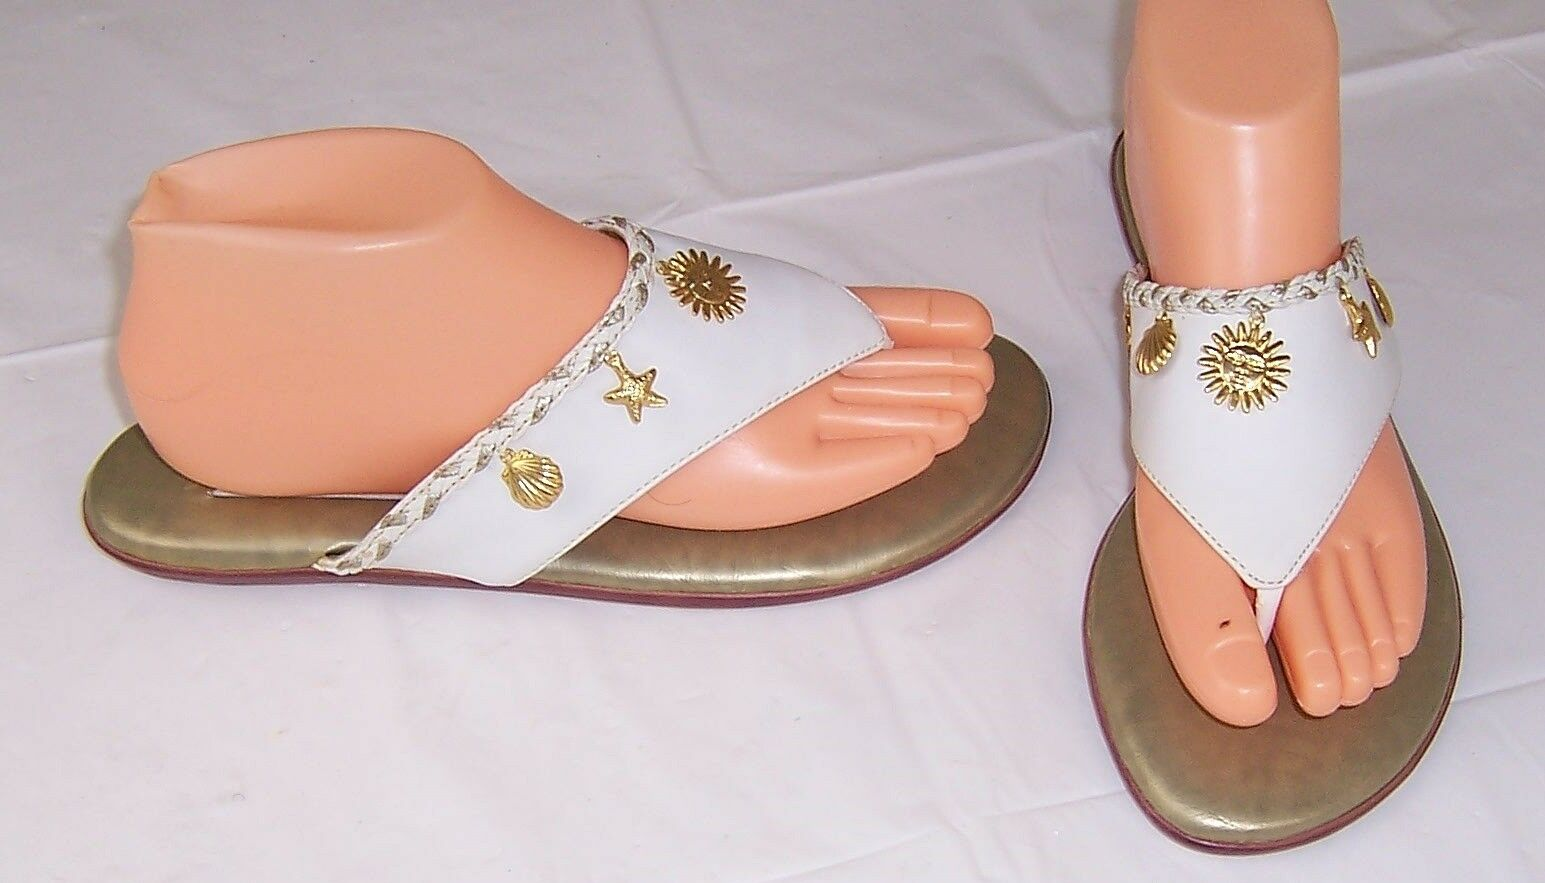 Prima Royale Flat Thongs,Bayside White,Seashell Charms,Sandals,Women's Size 9 M